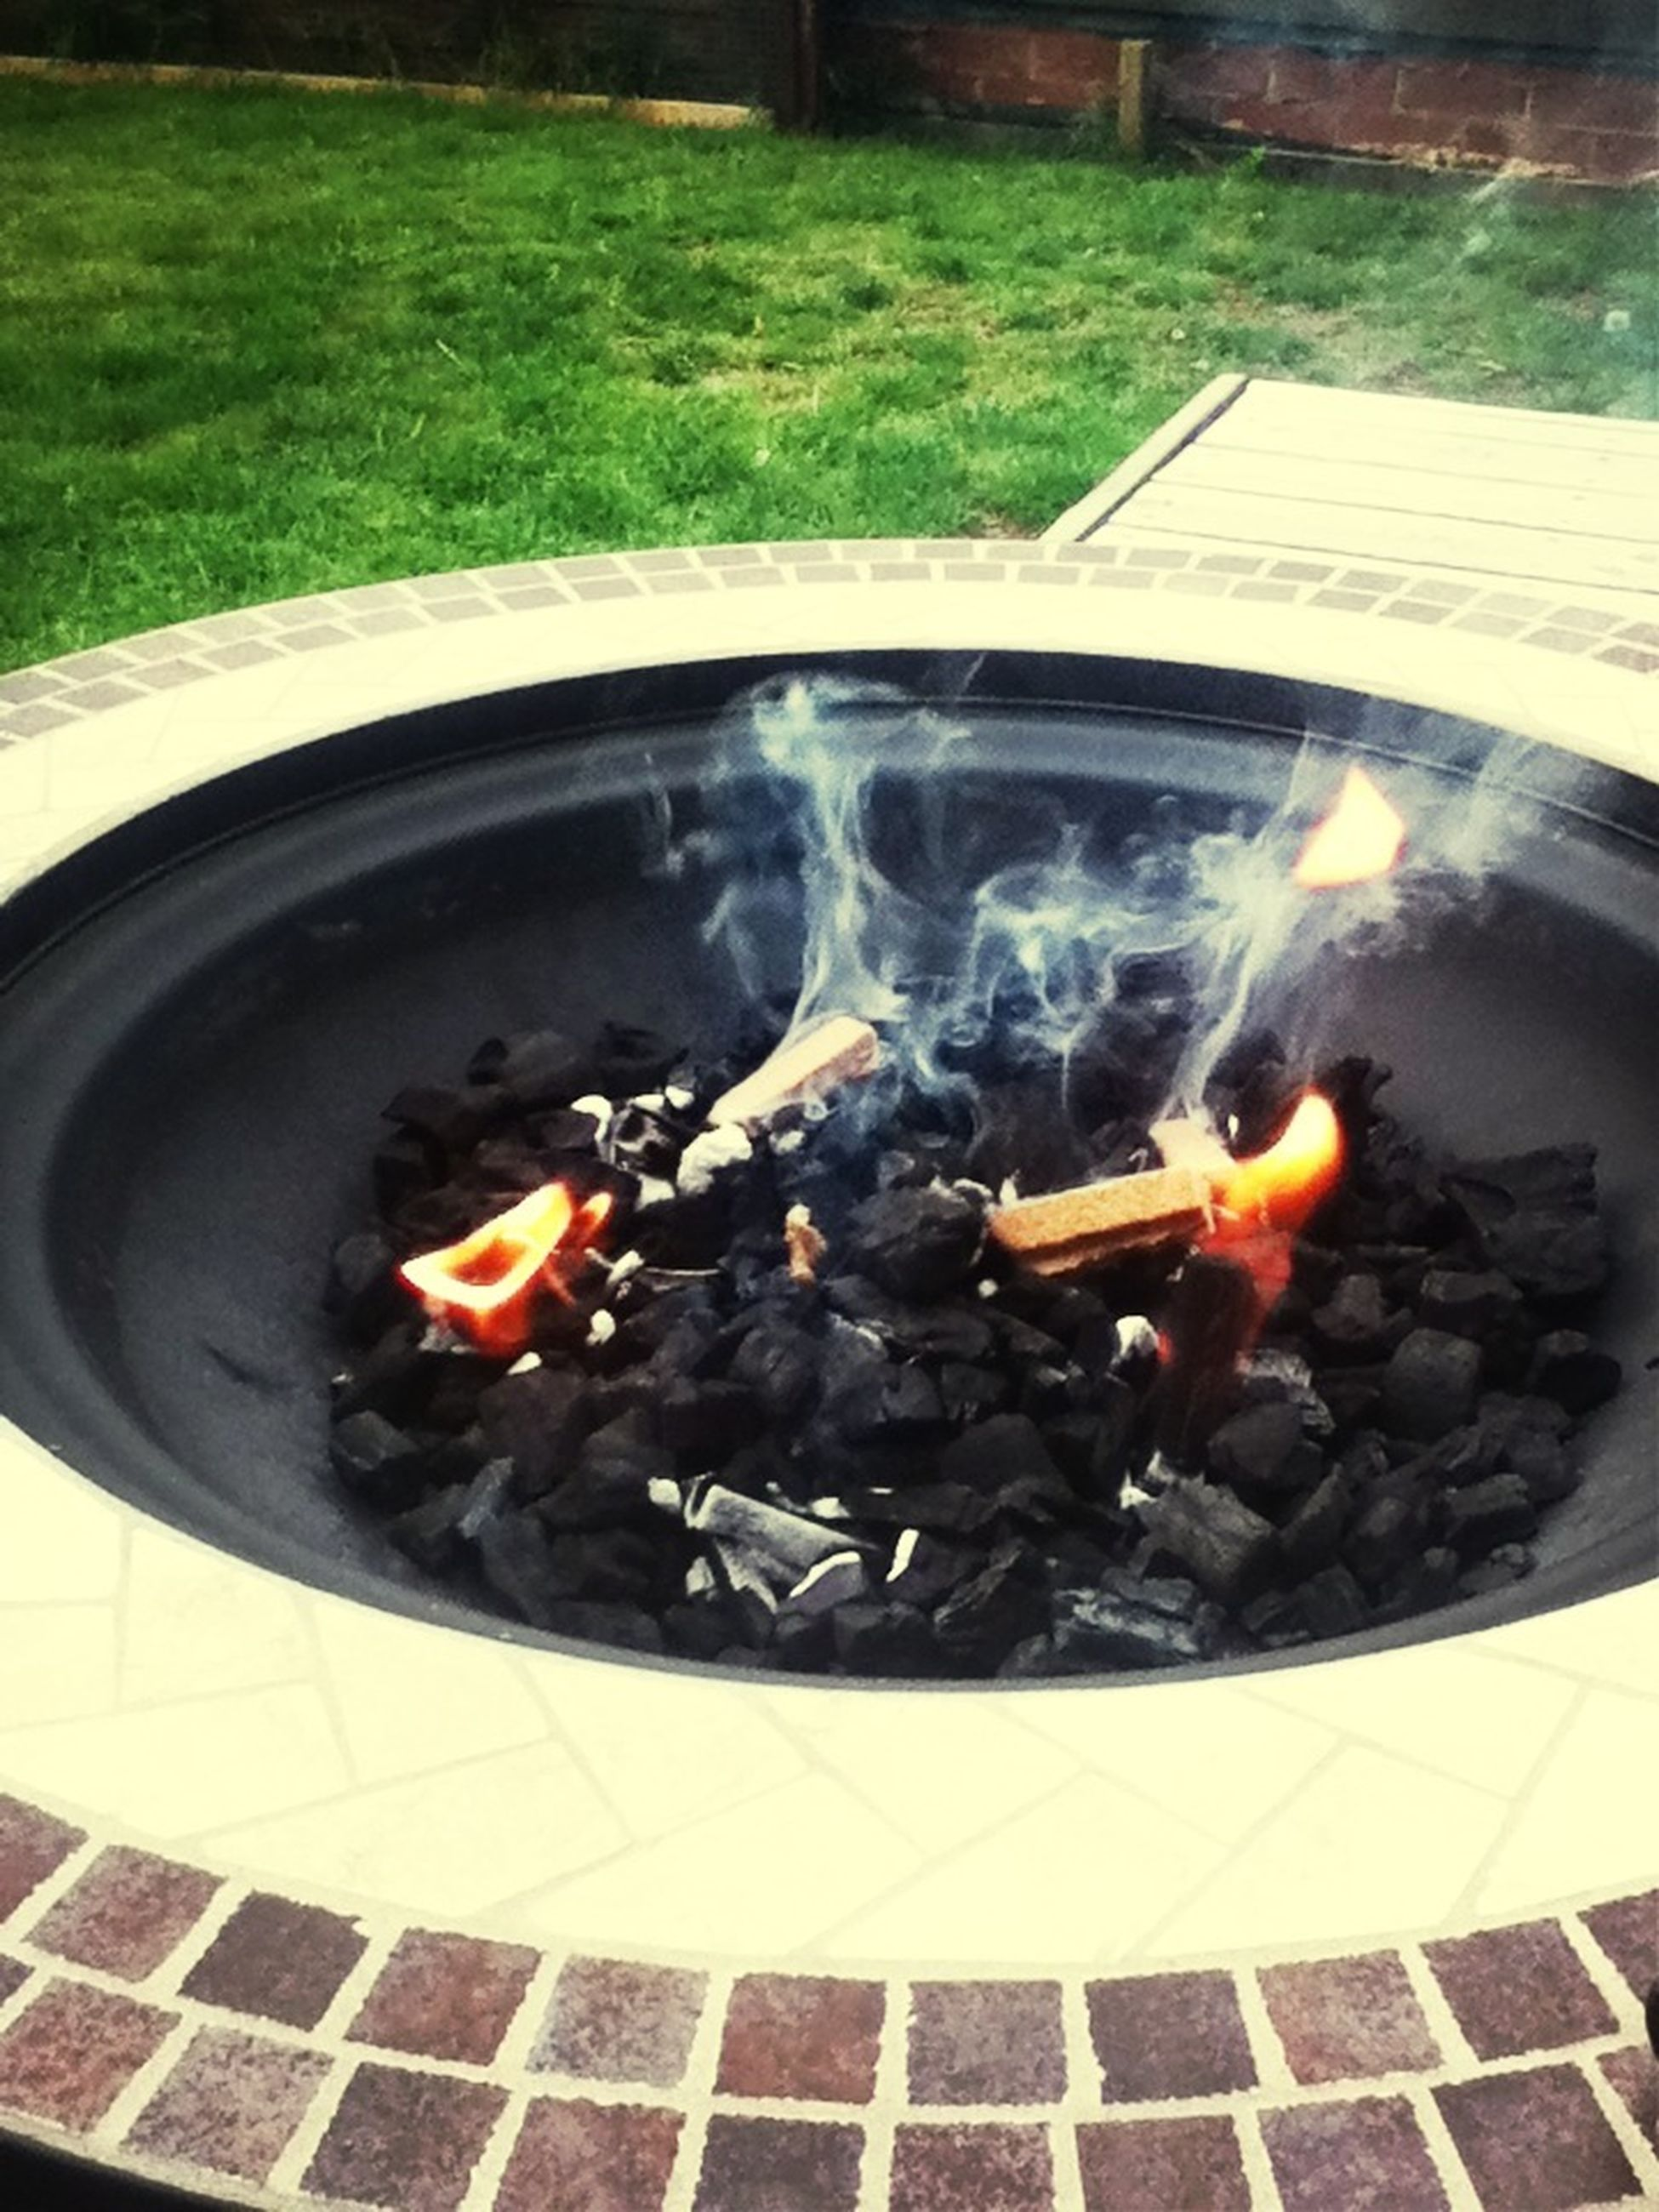 burning, flame, heat - temperature, fire - natural phenomenon, food and drink, preparation, cooking, high angle view, food, freshness, cooking pan, close-up, fire, motion, smoke - physical structure, indoors, barbecue, preparing food, barbecue grill, stove